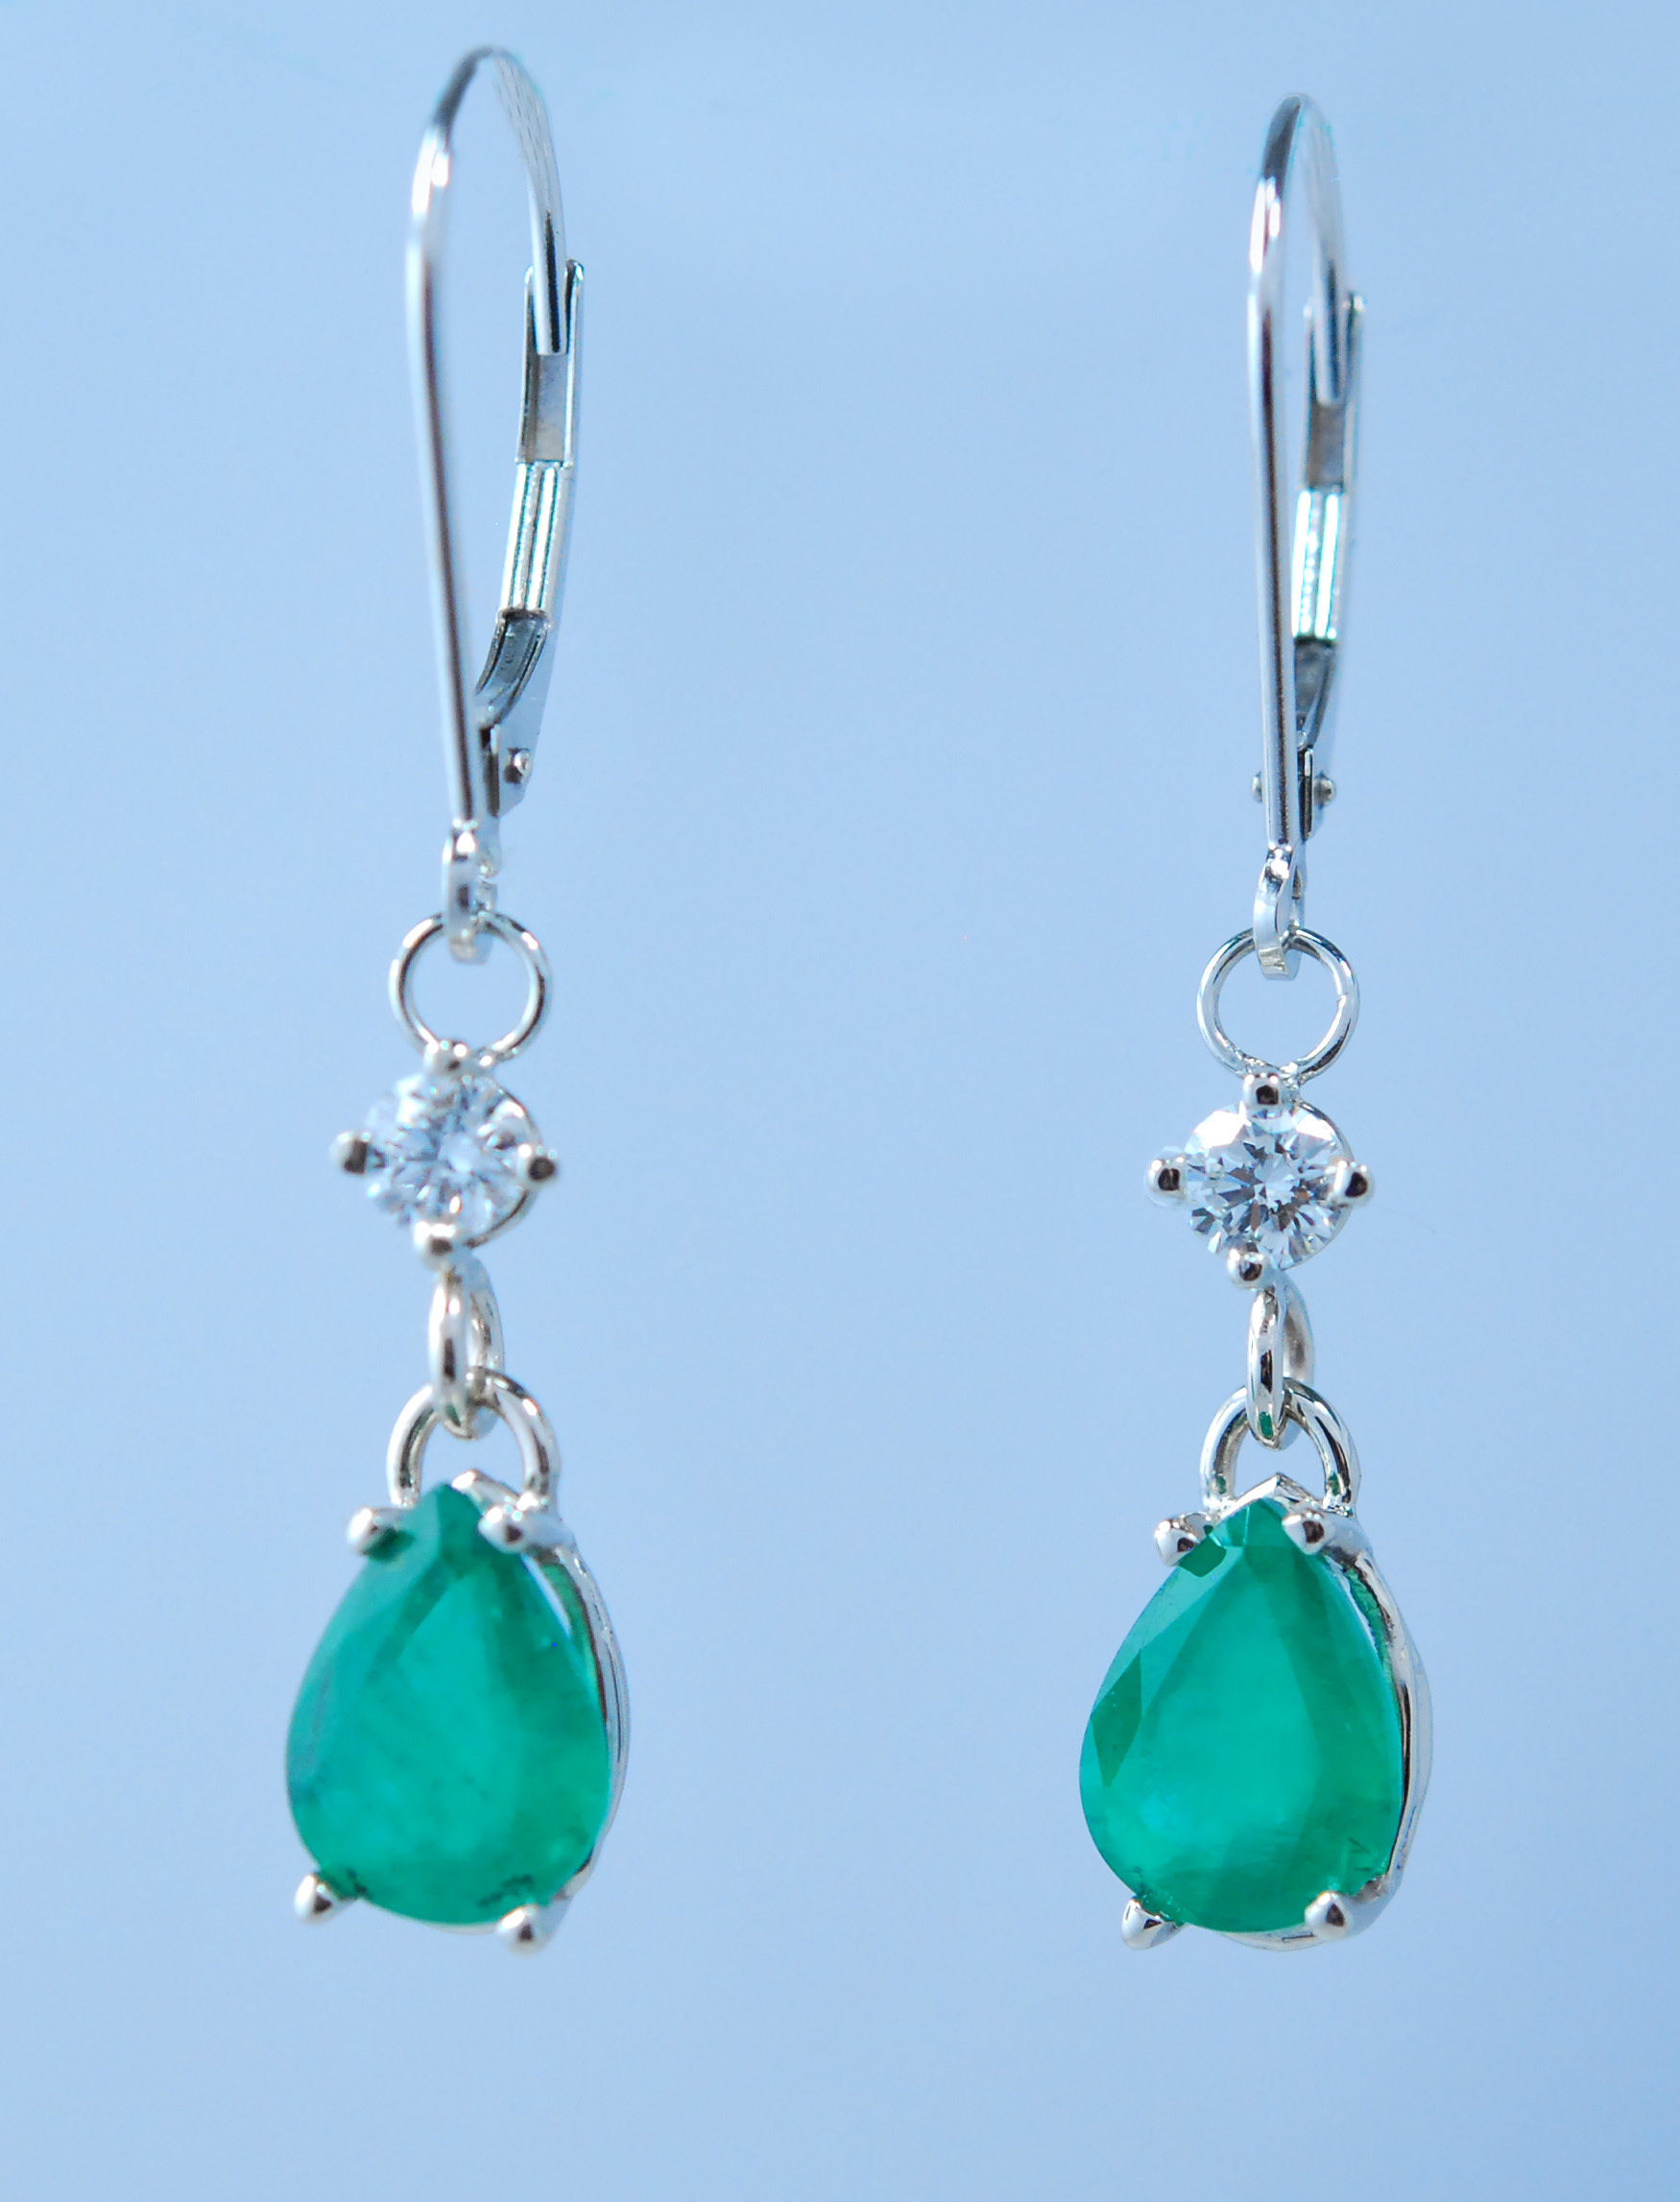 3ct Emerald earrings